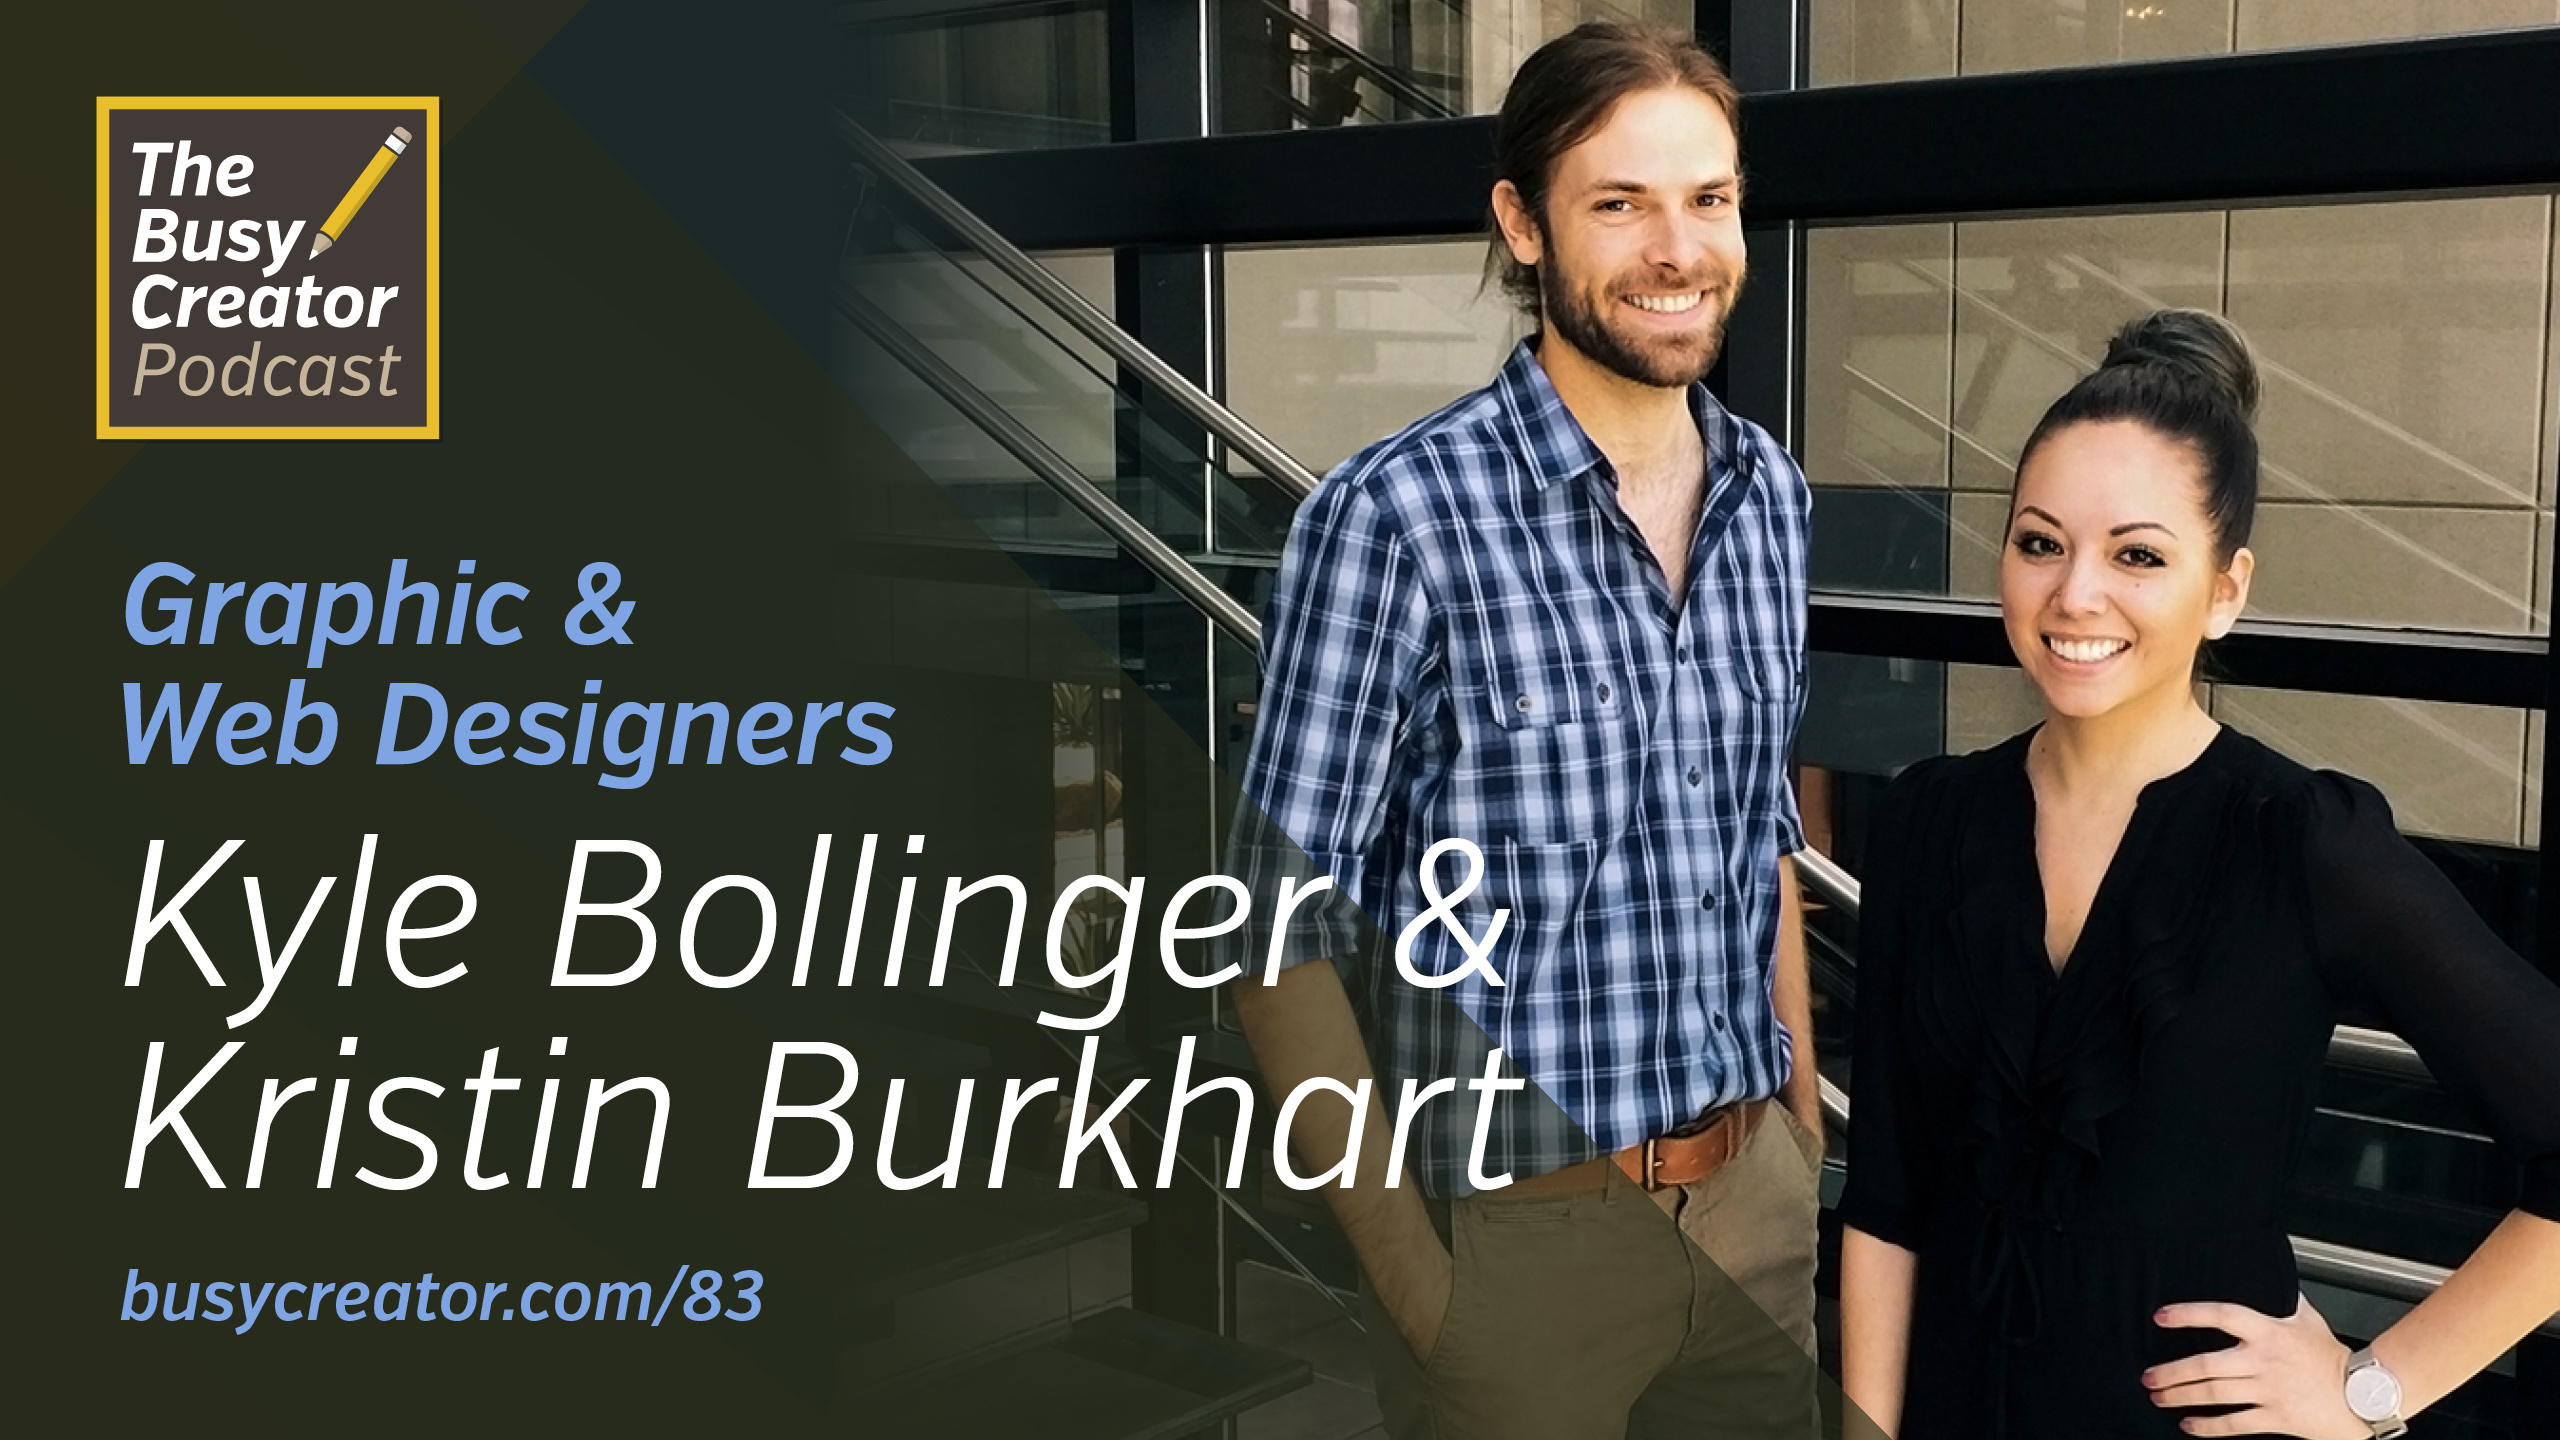 Workflows & Rituals for a Small Software Company with In-House Designers Kyle Bollinger & Kristin Burkhart